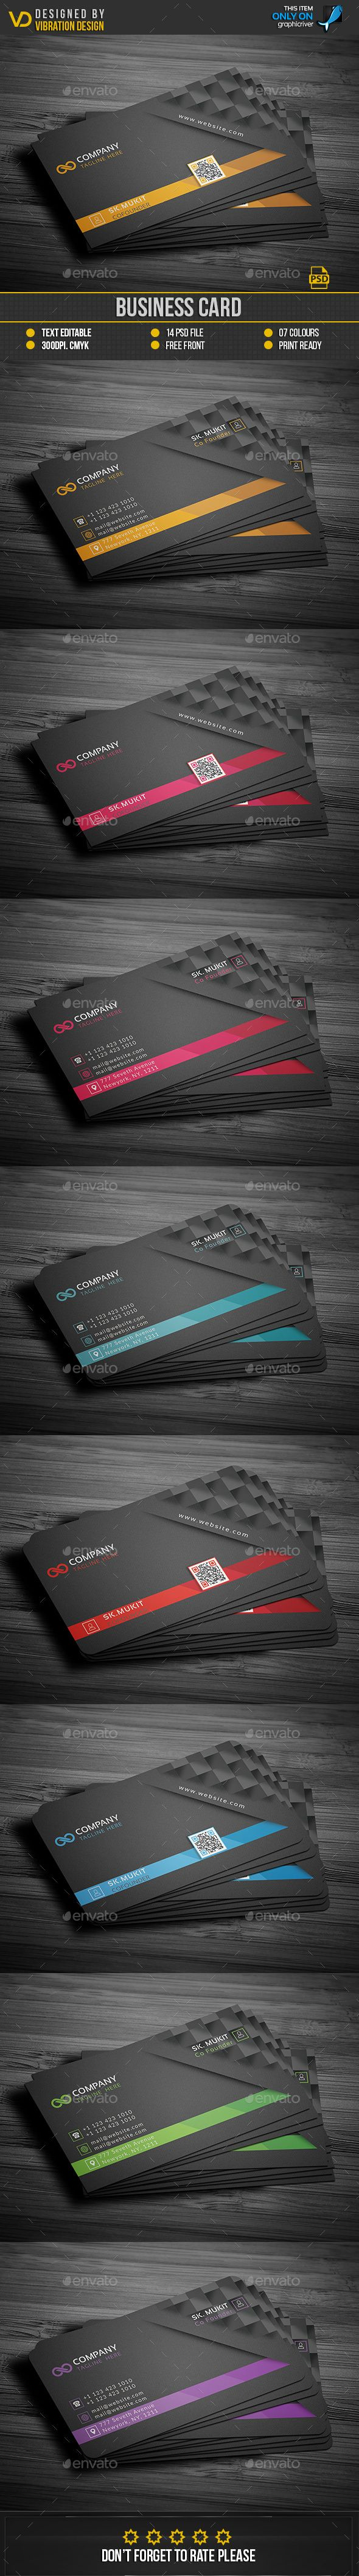 #Business #Card - Business Cards Print #Templates Download here: https://graphicriver.net/item/business-card/19222978?ref=alena994